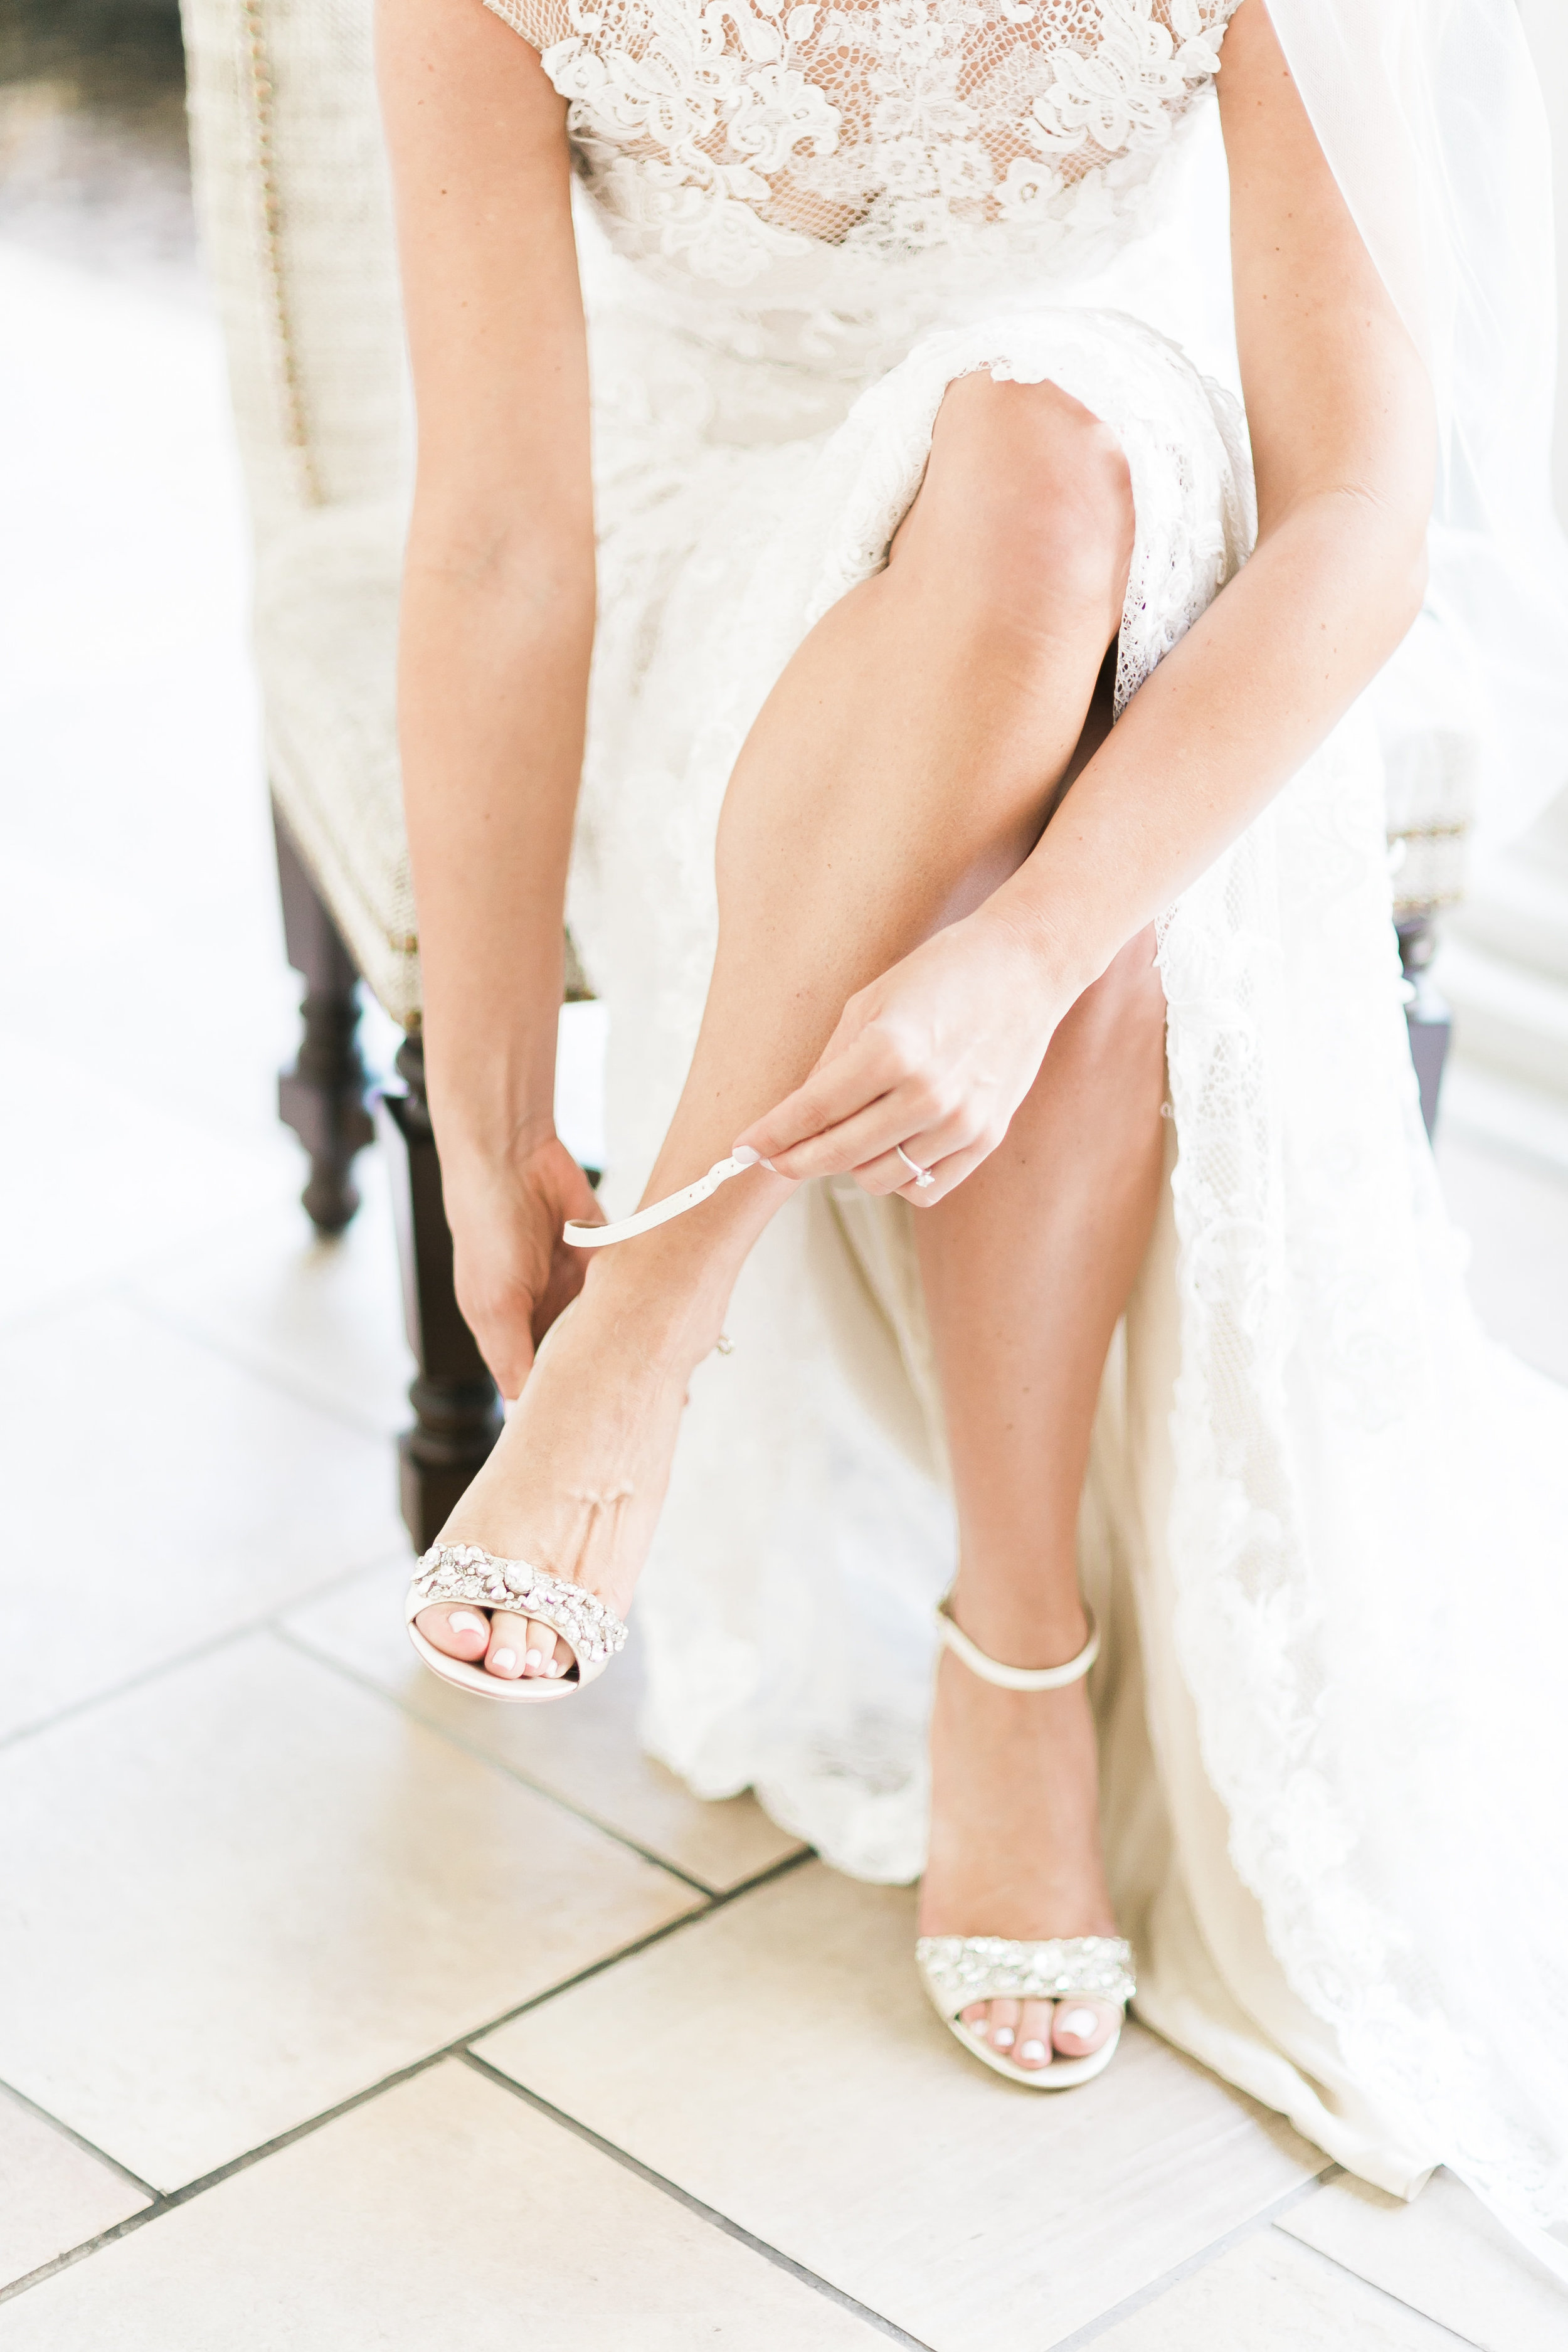 Bride putting on wedding shoes.   CREDITS:  Destination Wedding Planner  ANDREA EPPOLITO EVENTS  · Images by  J.ANNE P  HOTOGRAPHY  · Video  HOO FILMS  · Venue Ritz Carlton Bacara Santa Barbara ·Gown  MONIQUE LHULLIER ·Bridesmaids Dresses  SHOW ME YOUR MUMU ·Stationery  SHE PAPERIE ·Bride's Shoes  BADGLEY MISCHKA ·Hair and Makeup  TEAM HAIR AND MAKEUP · Floral  BLUE MAGNOLIA ·Linen  LA TAVOLA ·Decor Rentals  TENT MERCHANT ·Calligraphy  EBB ·Lighting  FIVE STAR AV ·Ice Cream Station  MCCONNELL'S ICE CREAM